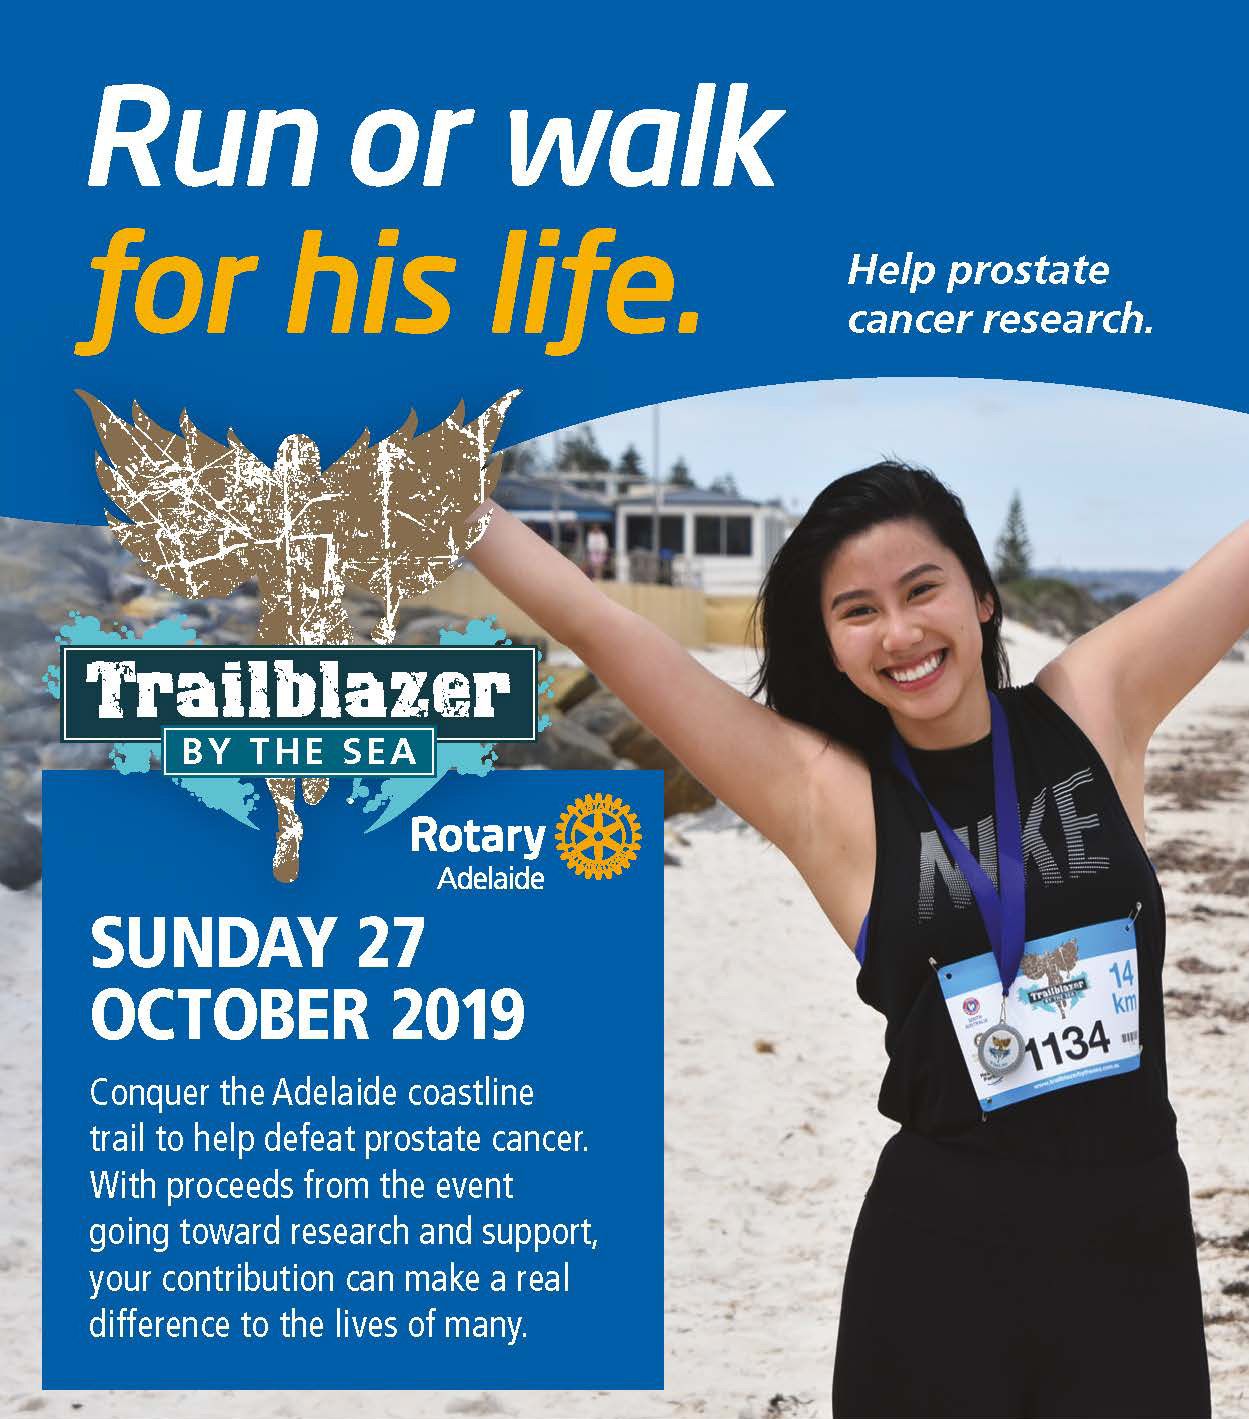 Trailblazer By The Sea - 27 October 2019